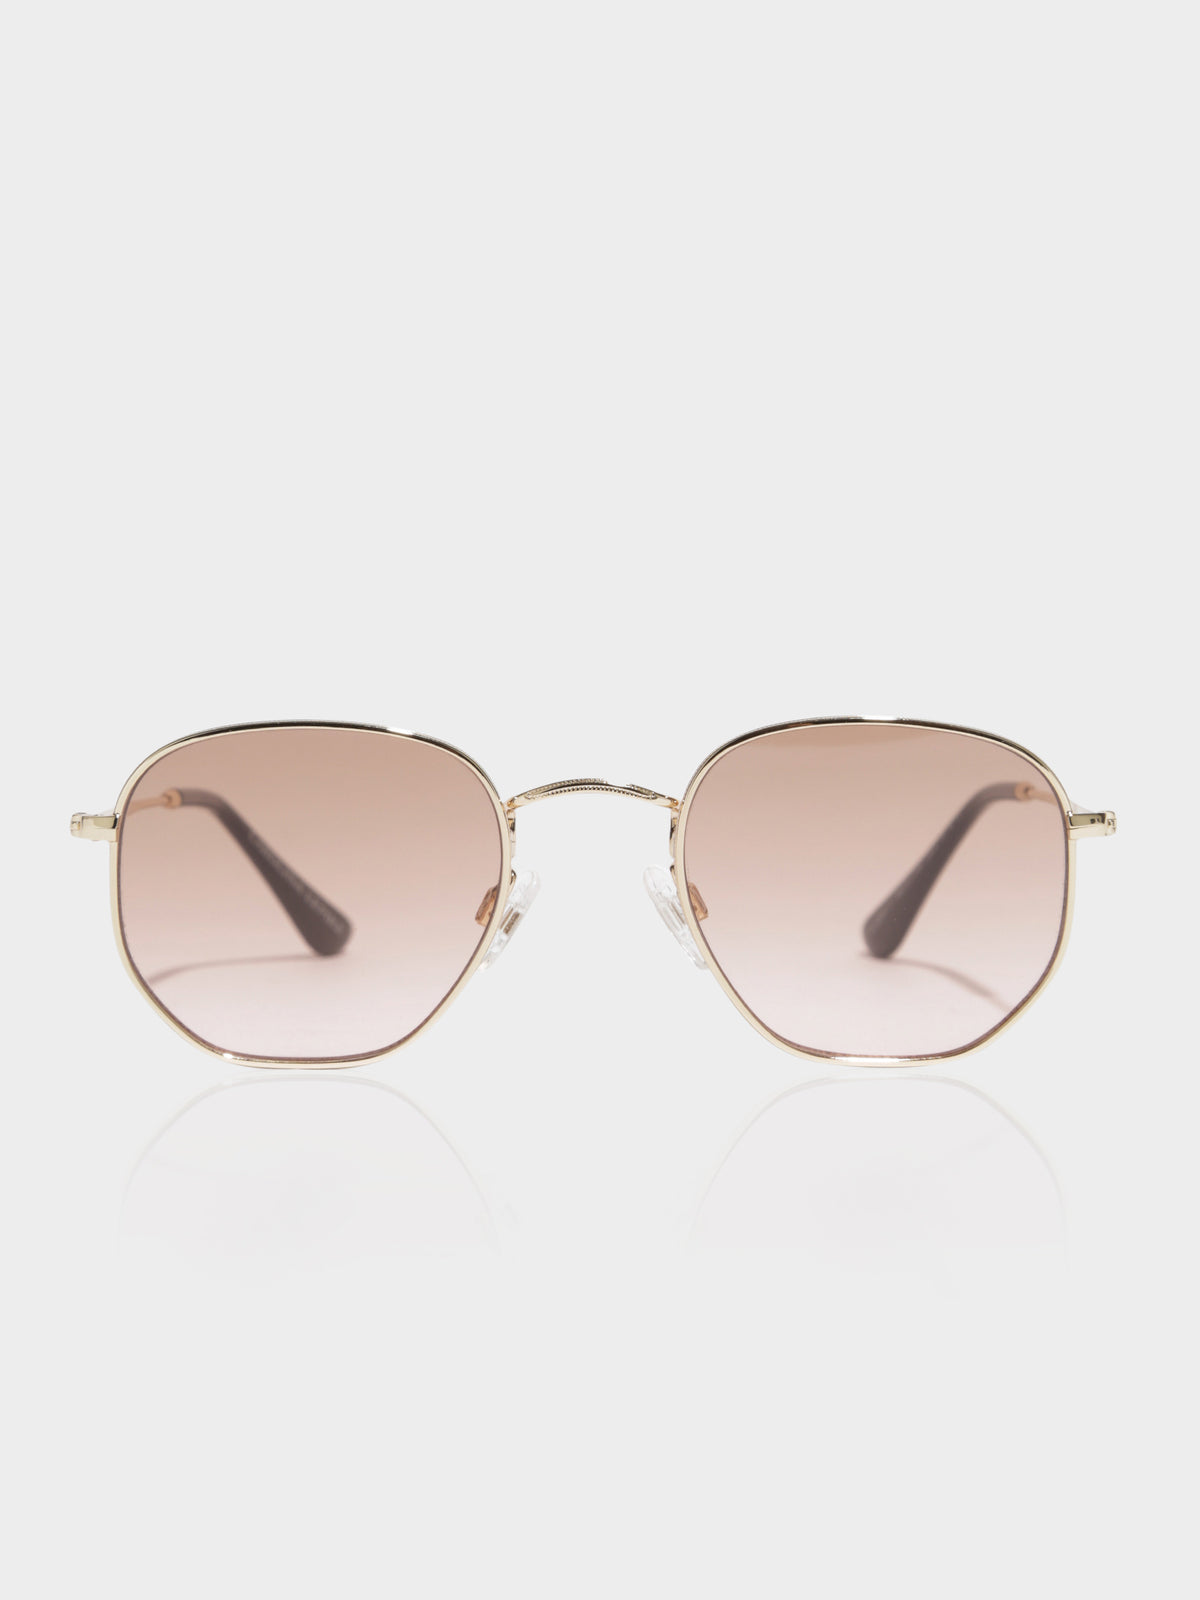 CL6551 Carangie Sunglasses in Gold